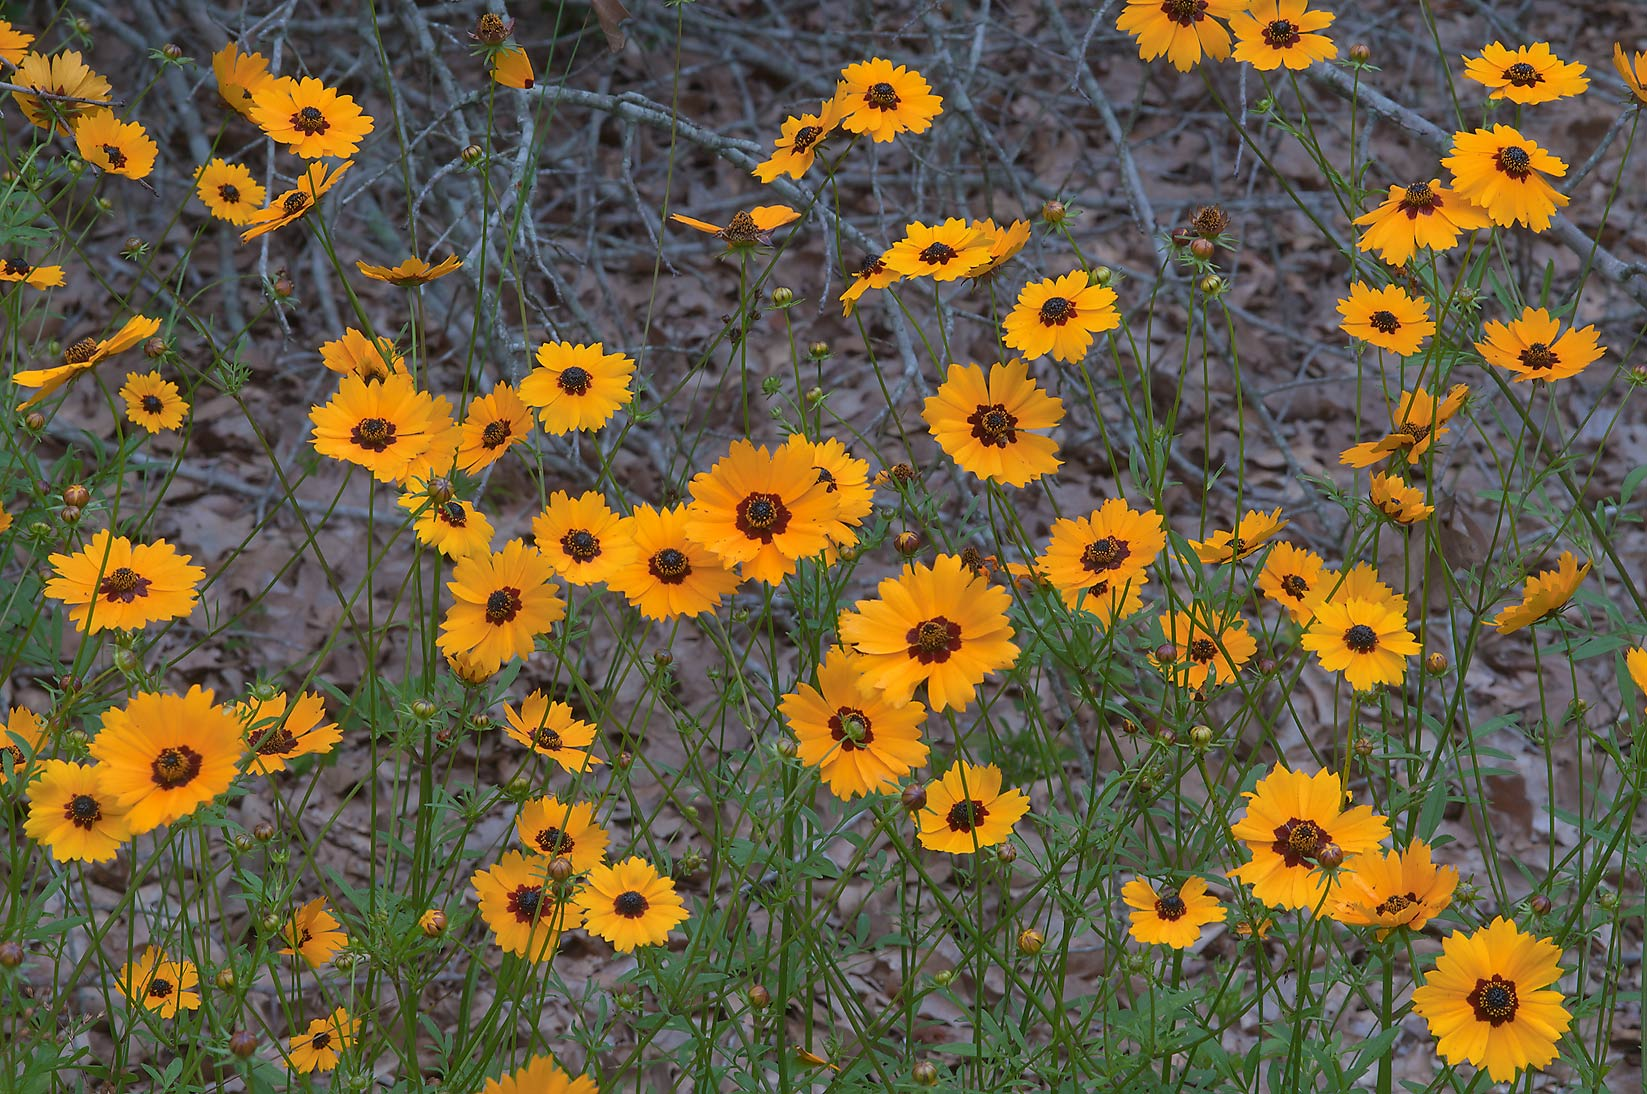 Coreopsis near dry oaks in Lick Creek Park. College Station, Texas